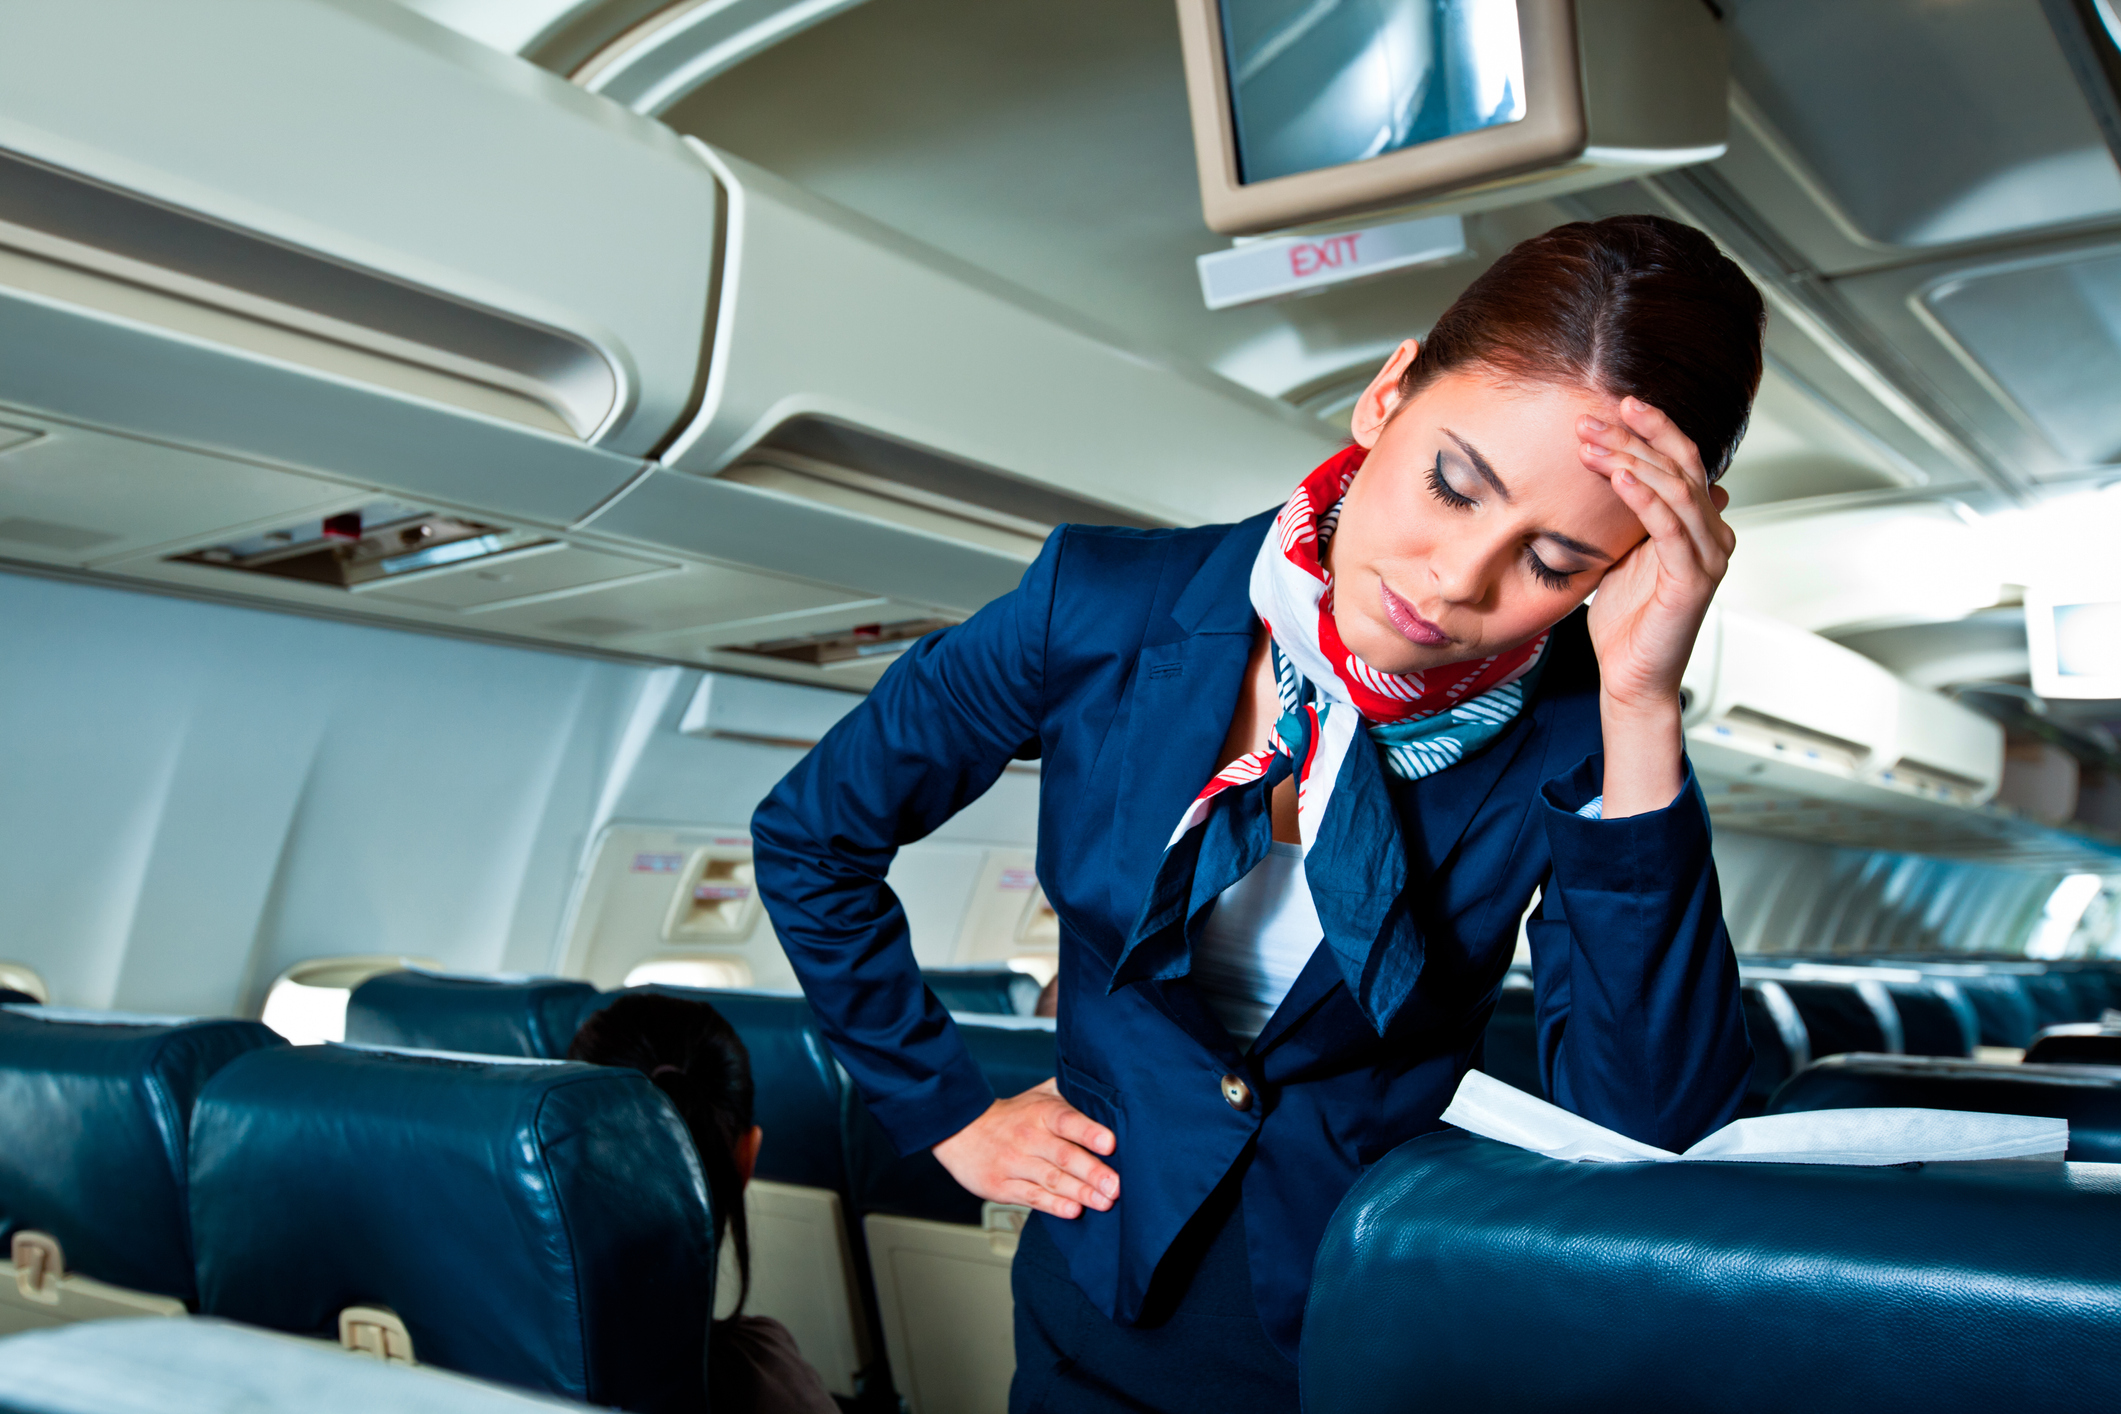 Frustrated female flight attendant on an empty airplane